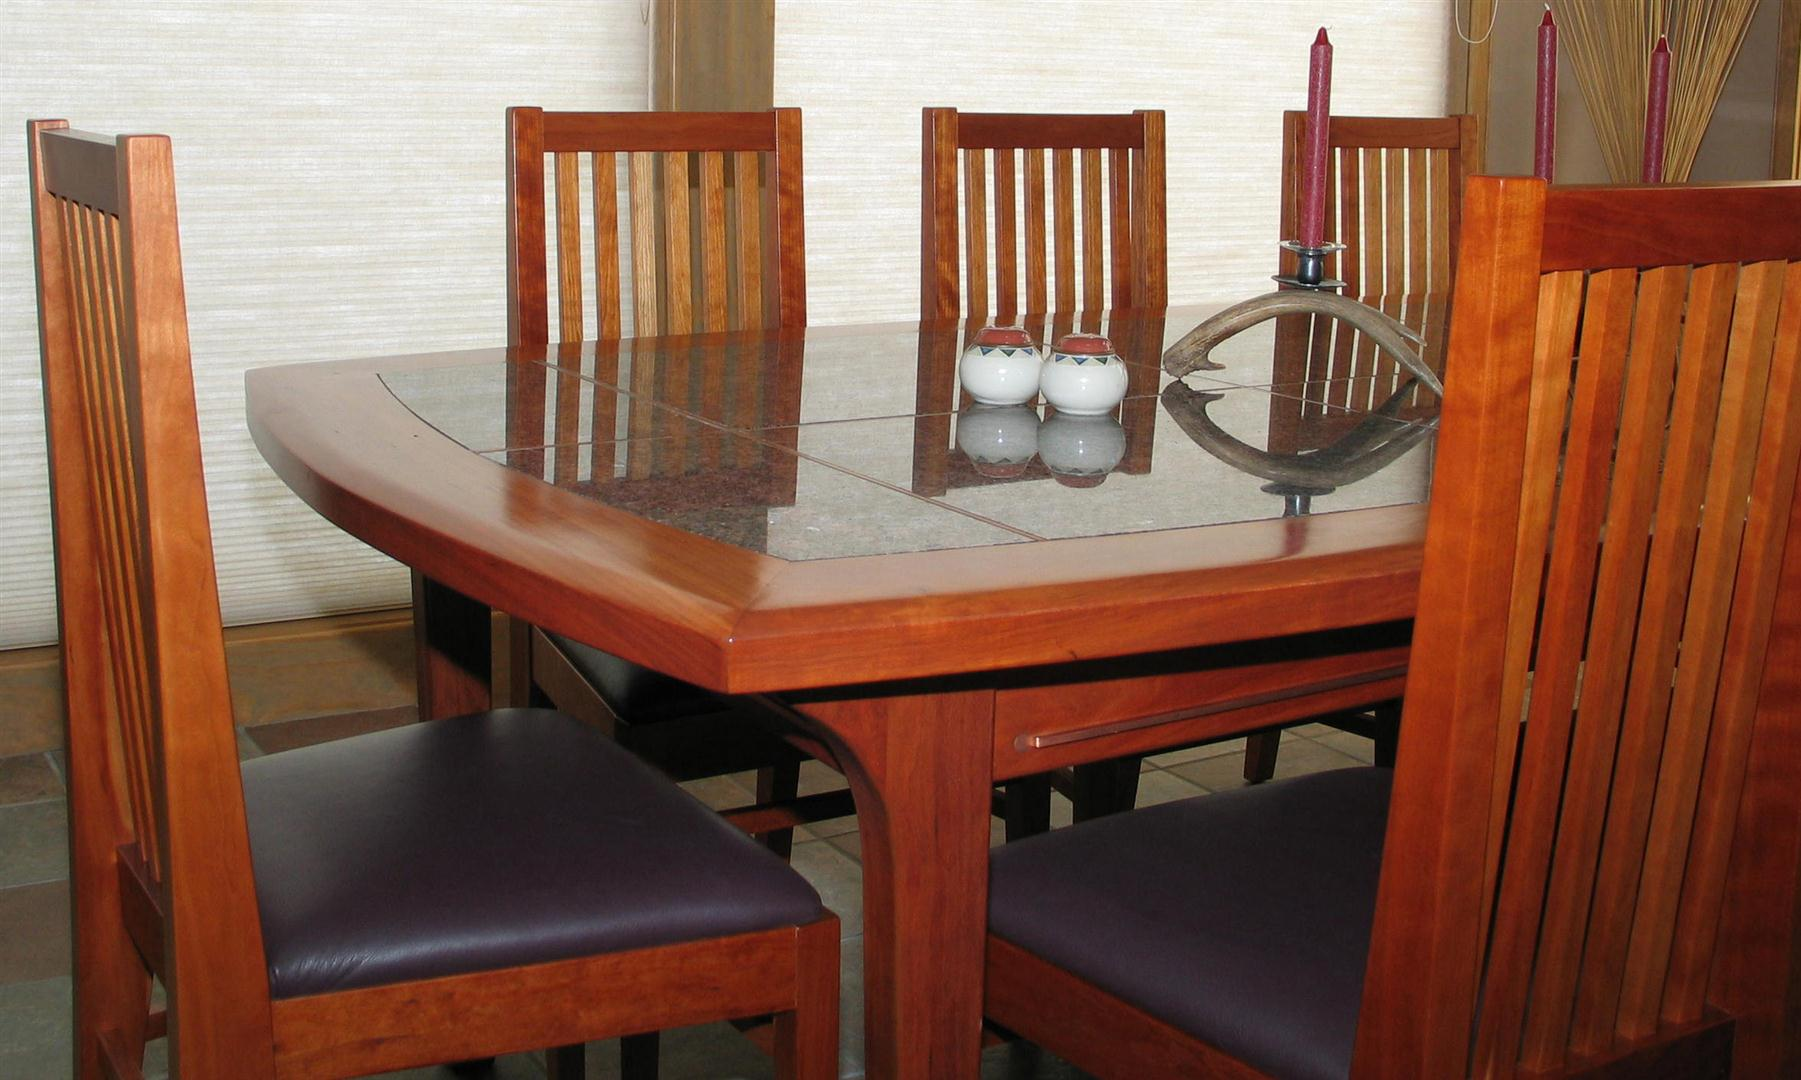 Custom Built Dining Table and Chairs - Cherry